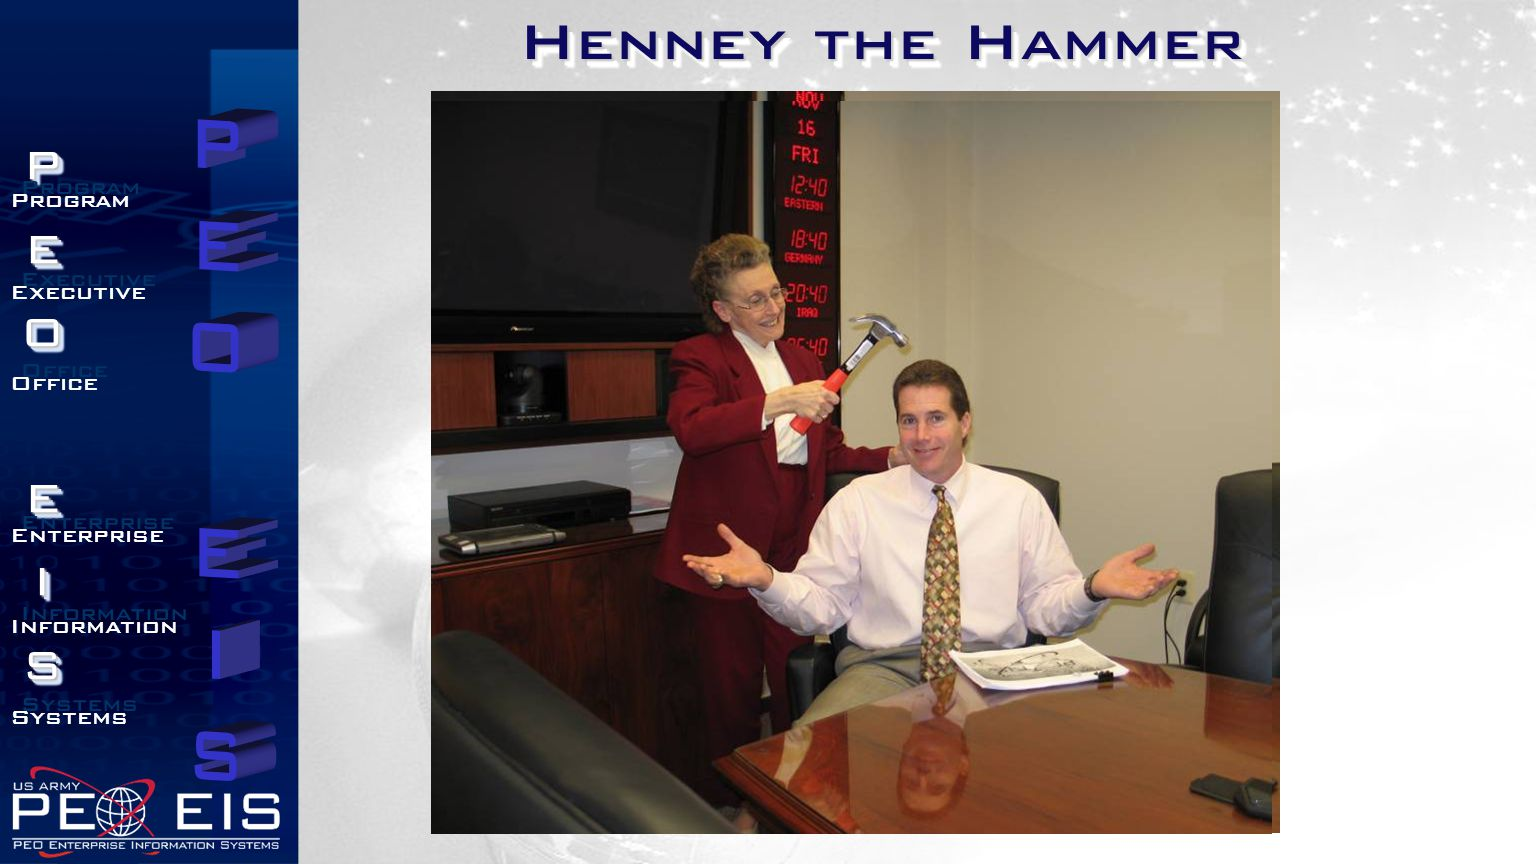 Henney the Hammer